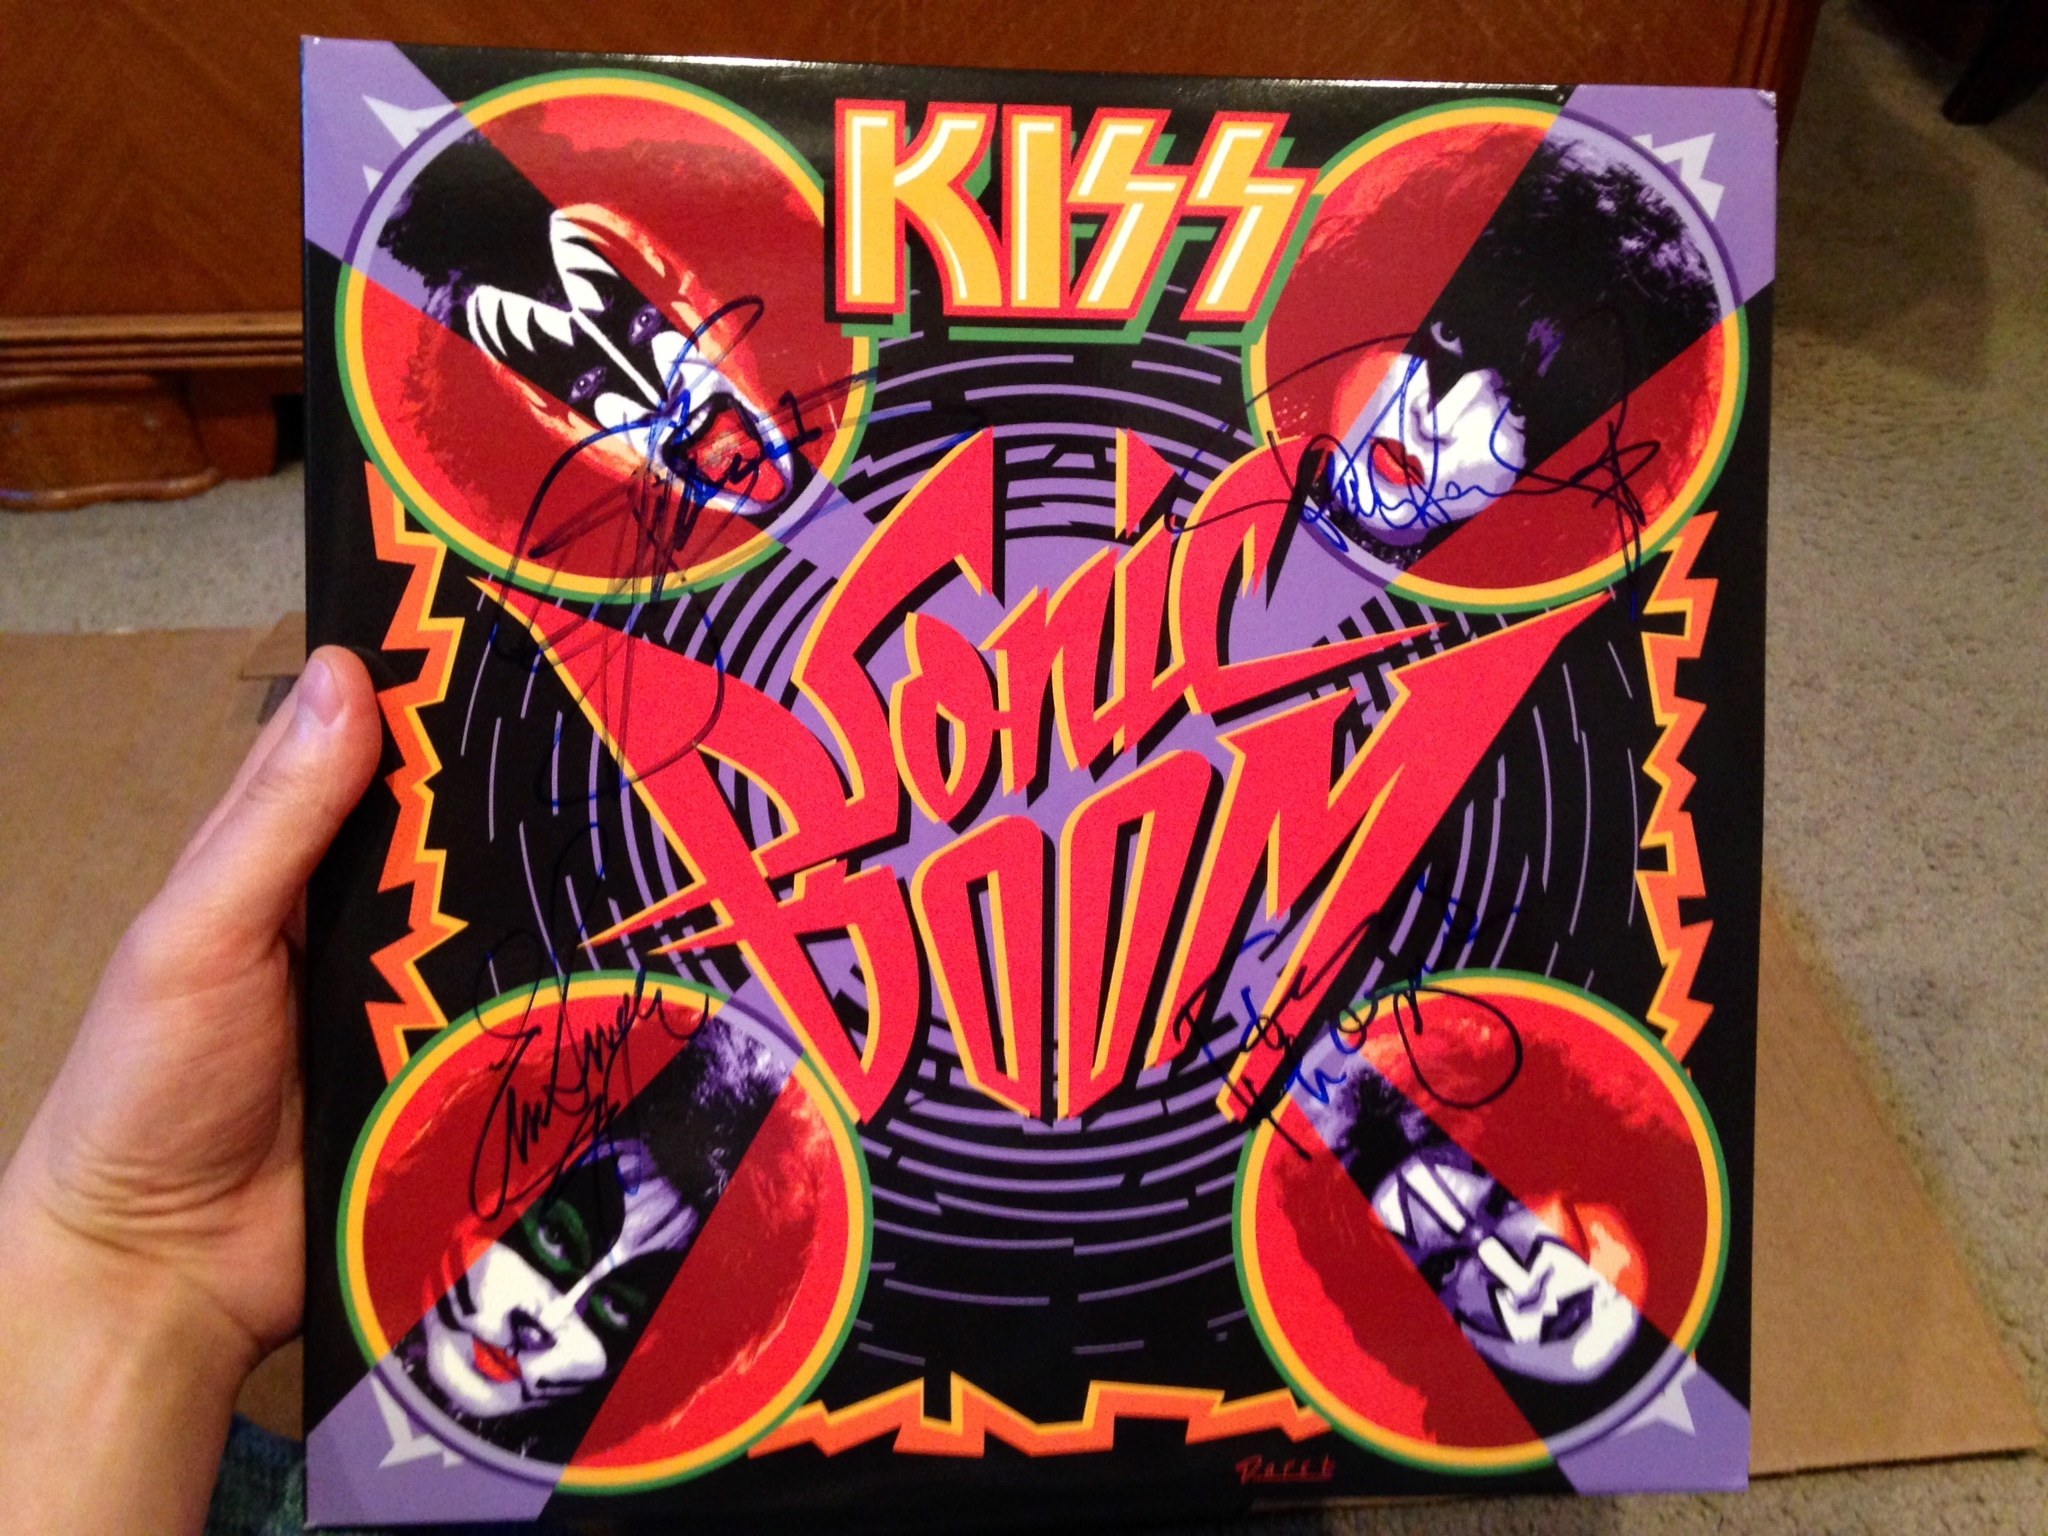 Kiss the best show on earth michael cavacini after the meet and greet with kiss i headed into the venue and hit up the merchandise booth where i got a great three quarter sleeve kiss baseball shirt m4hsunfo